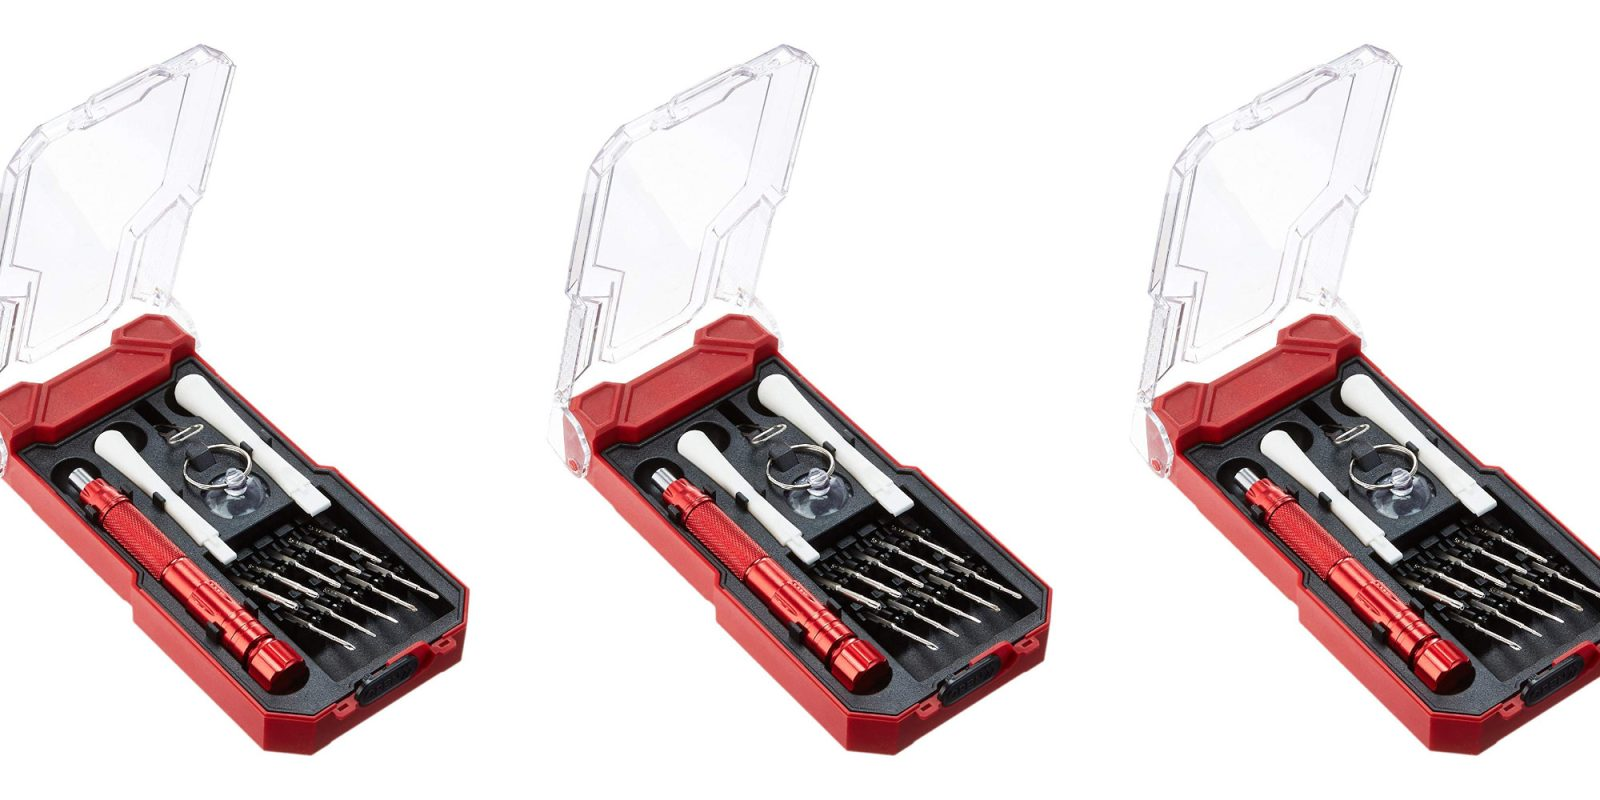 Fix your own electronics with Craftsman's 16-pc. Repair Kit: $9.50 (Save 40%)